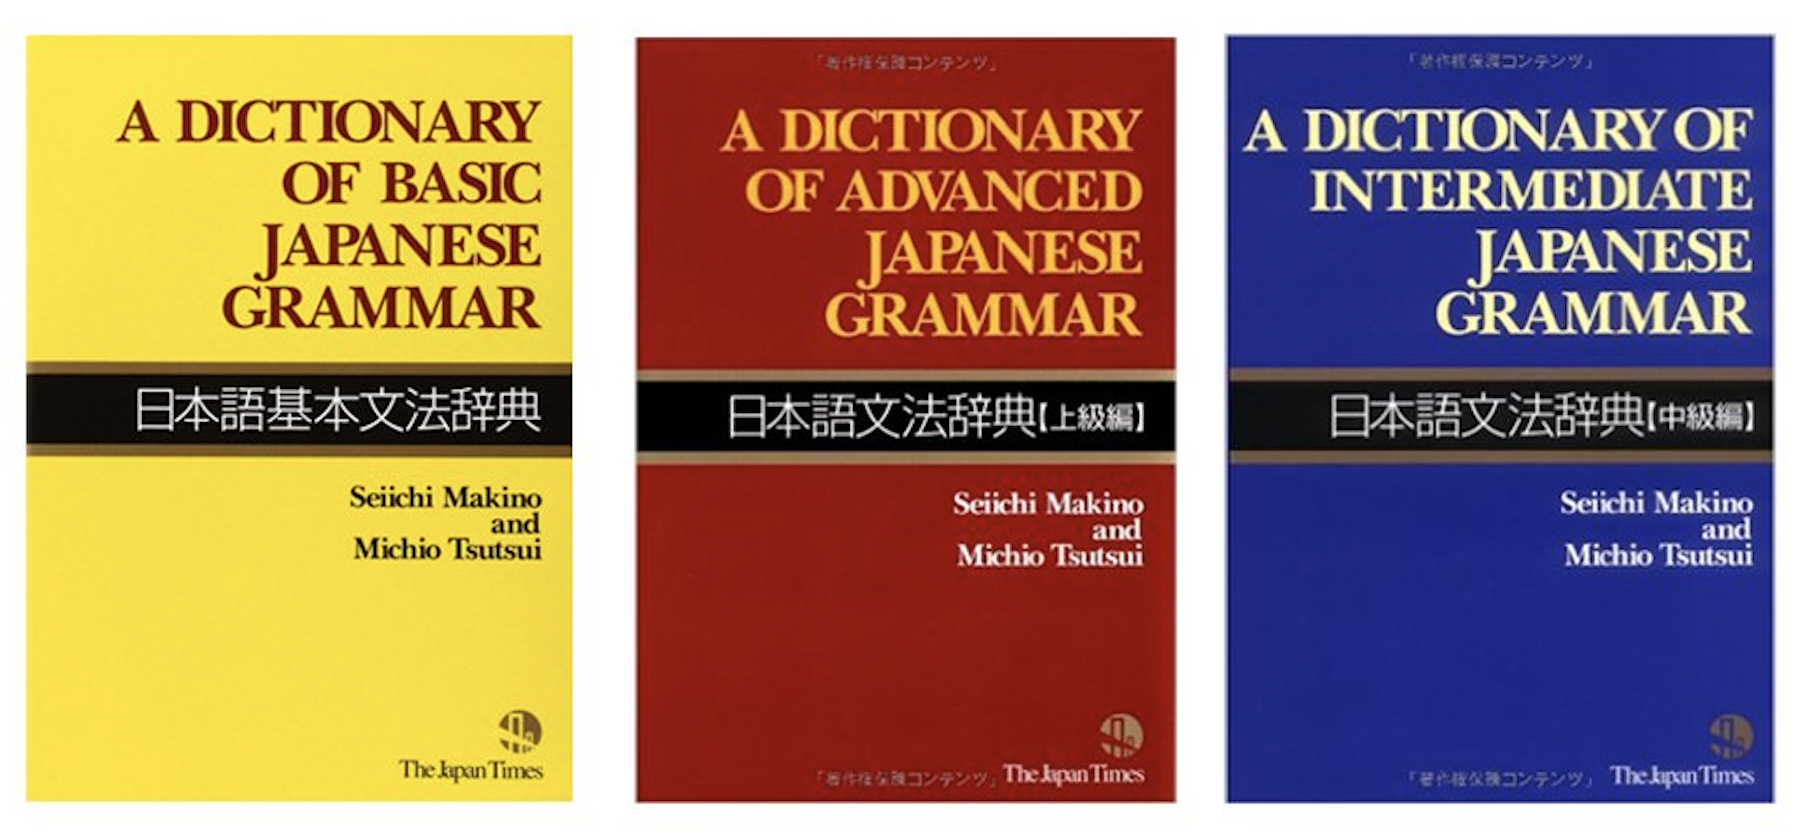 A Dictionary of Japanese Grammar